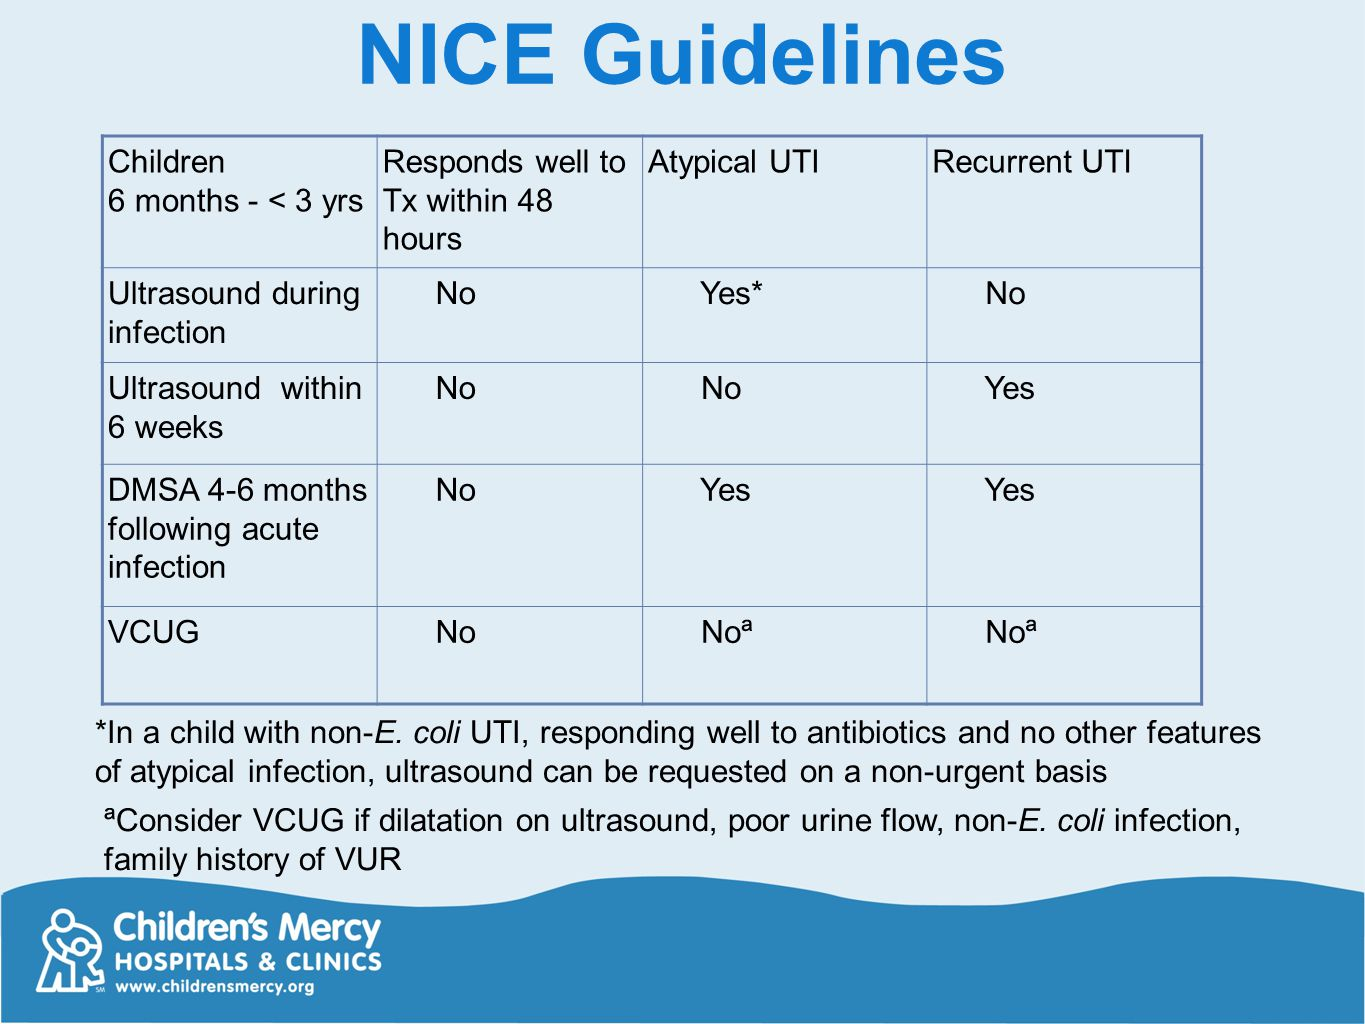 NICE Guidelines Children 6 months - < 3 yrs Responds well to Tx within 48 hours Atypical UTIRecurrent UTI Ultrasound during infection No Yes* No Ultra